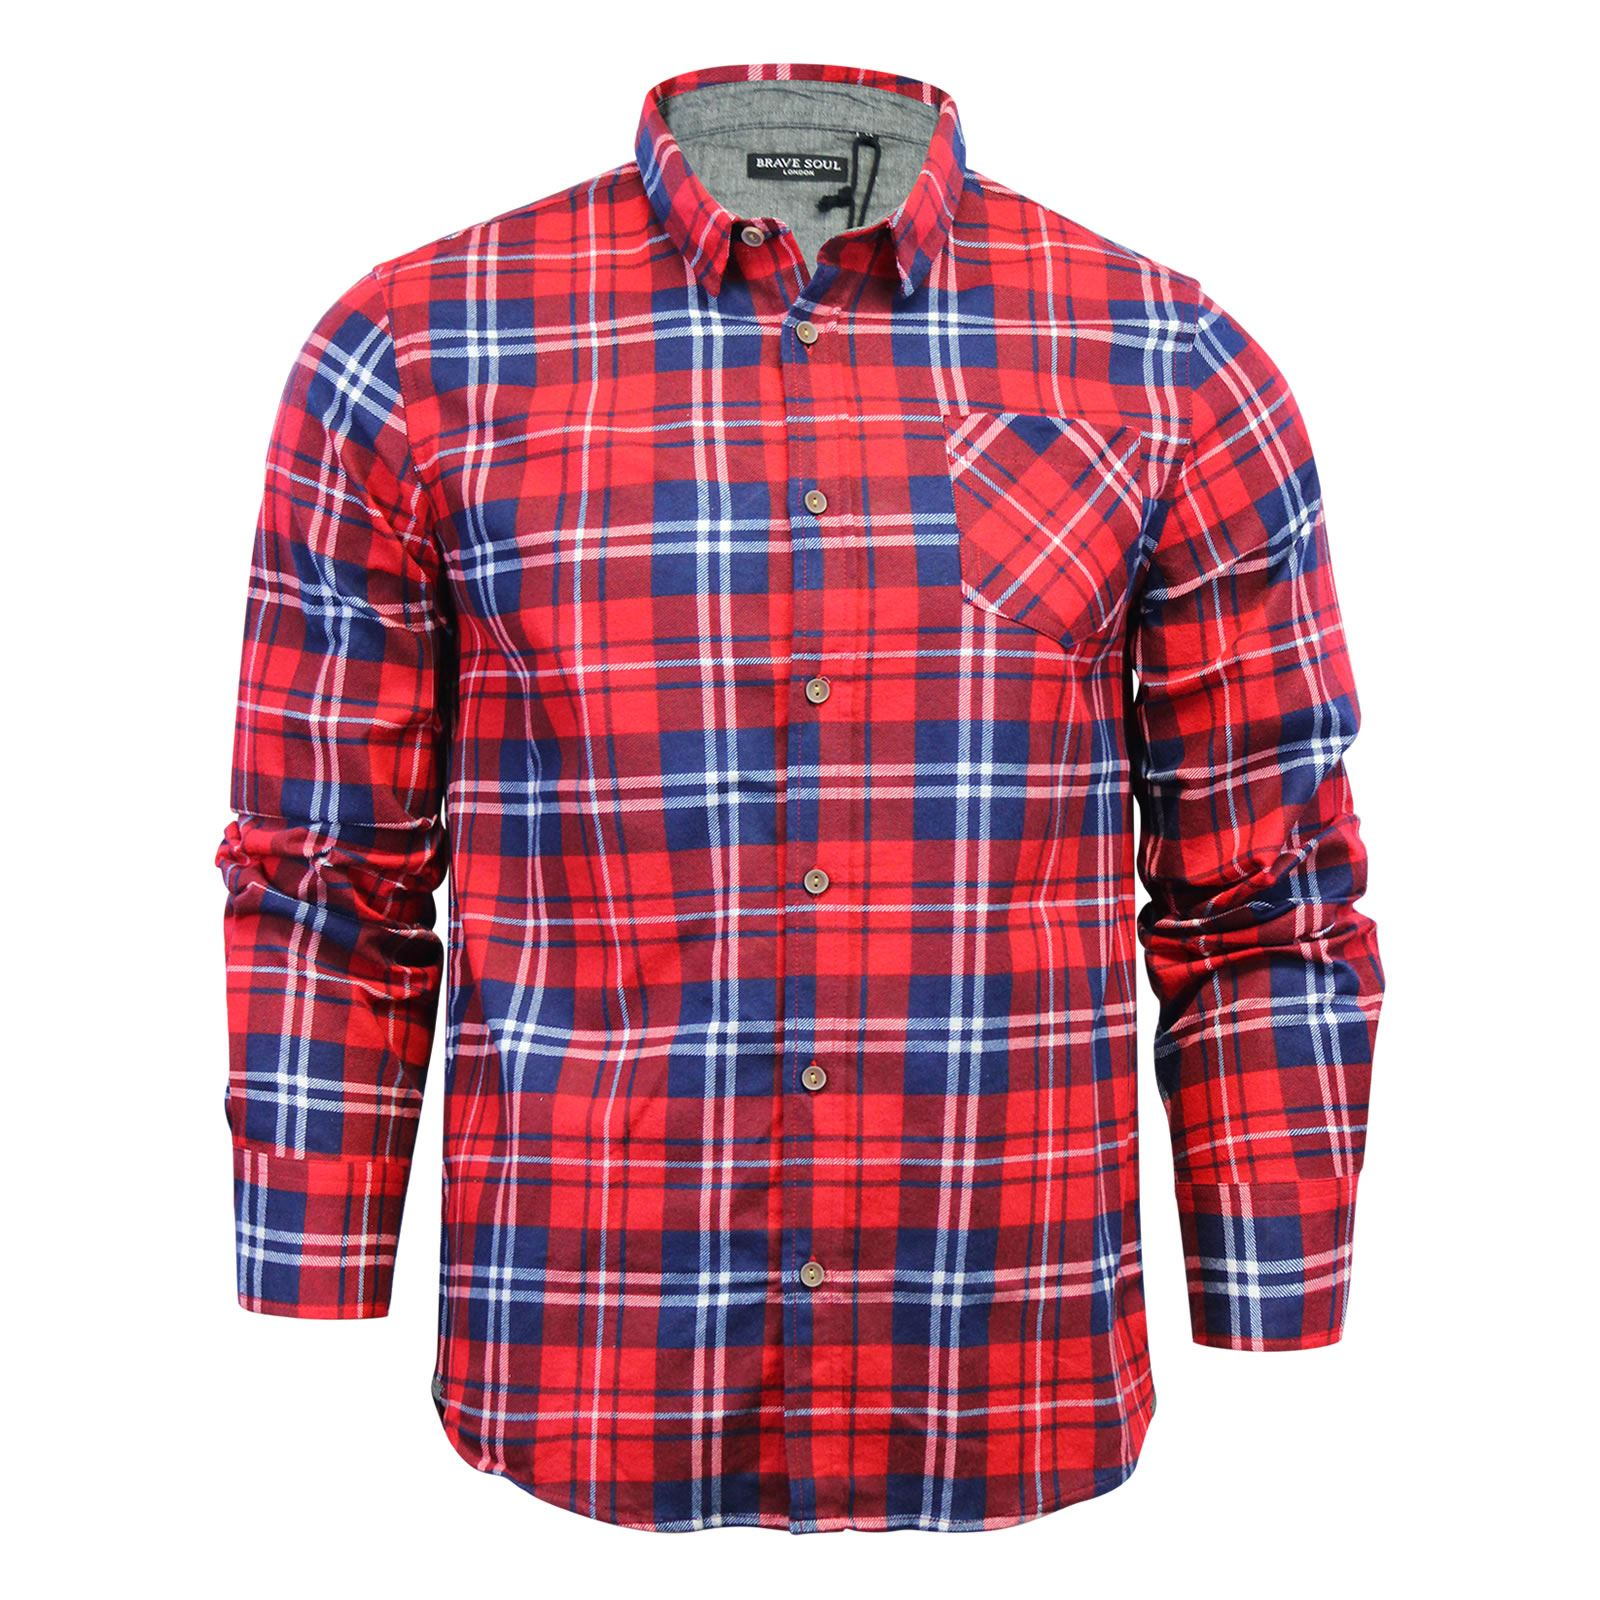 Brave-Soul-Mens-Check-Shirt-Flannel-Brushed-Cotton-Long-Sleeve-Casual-Top thumbnail 4